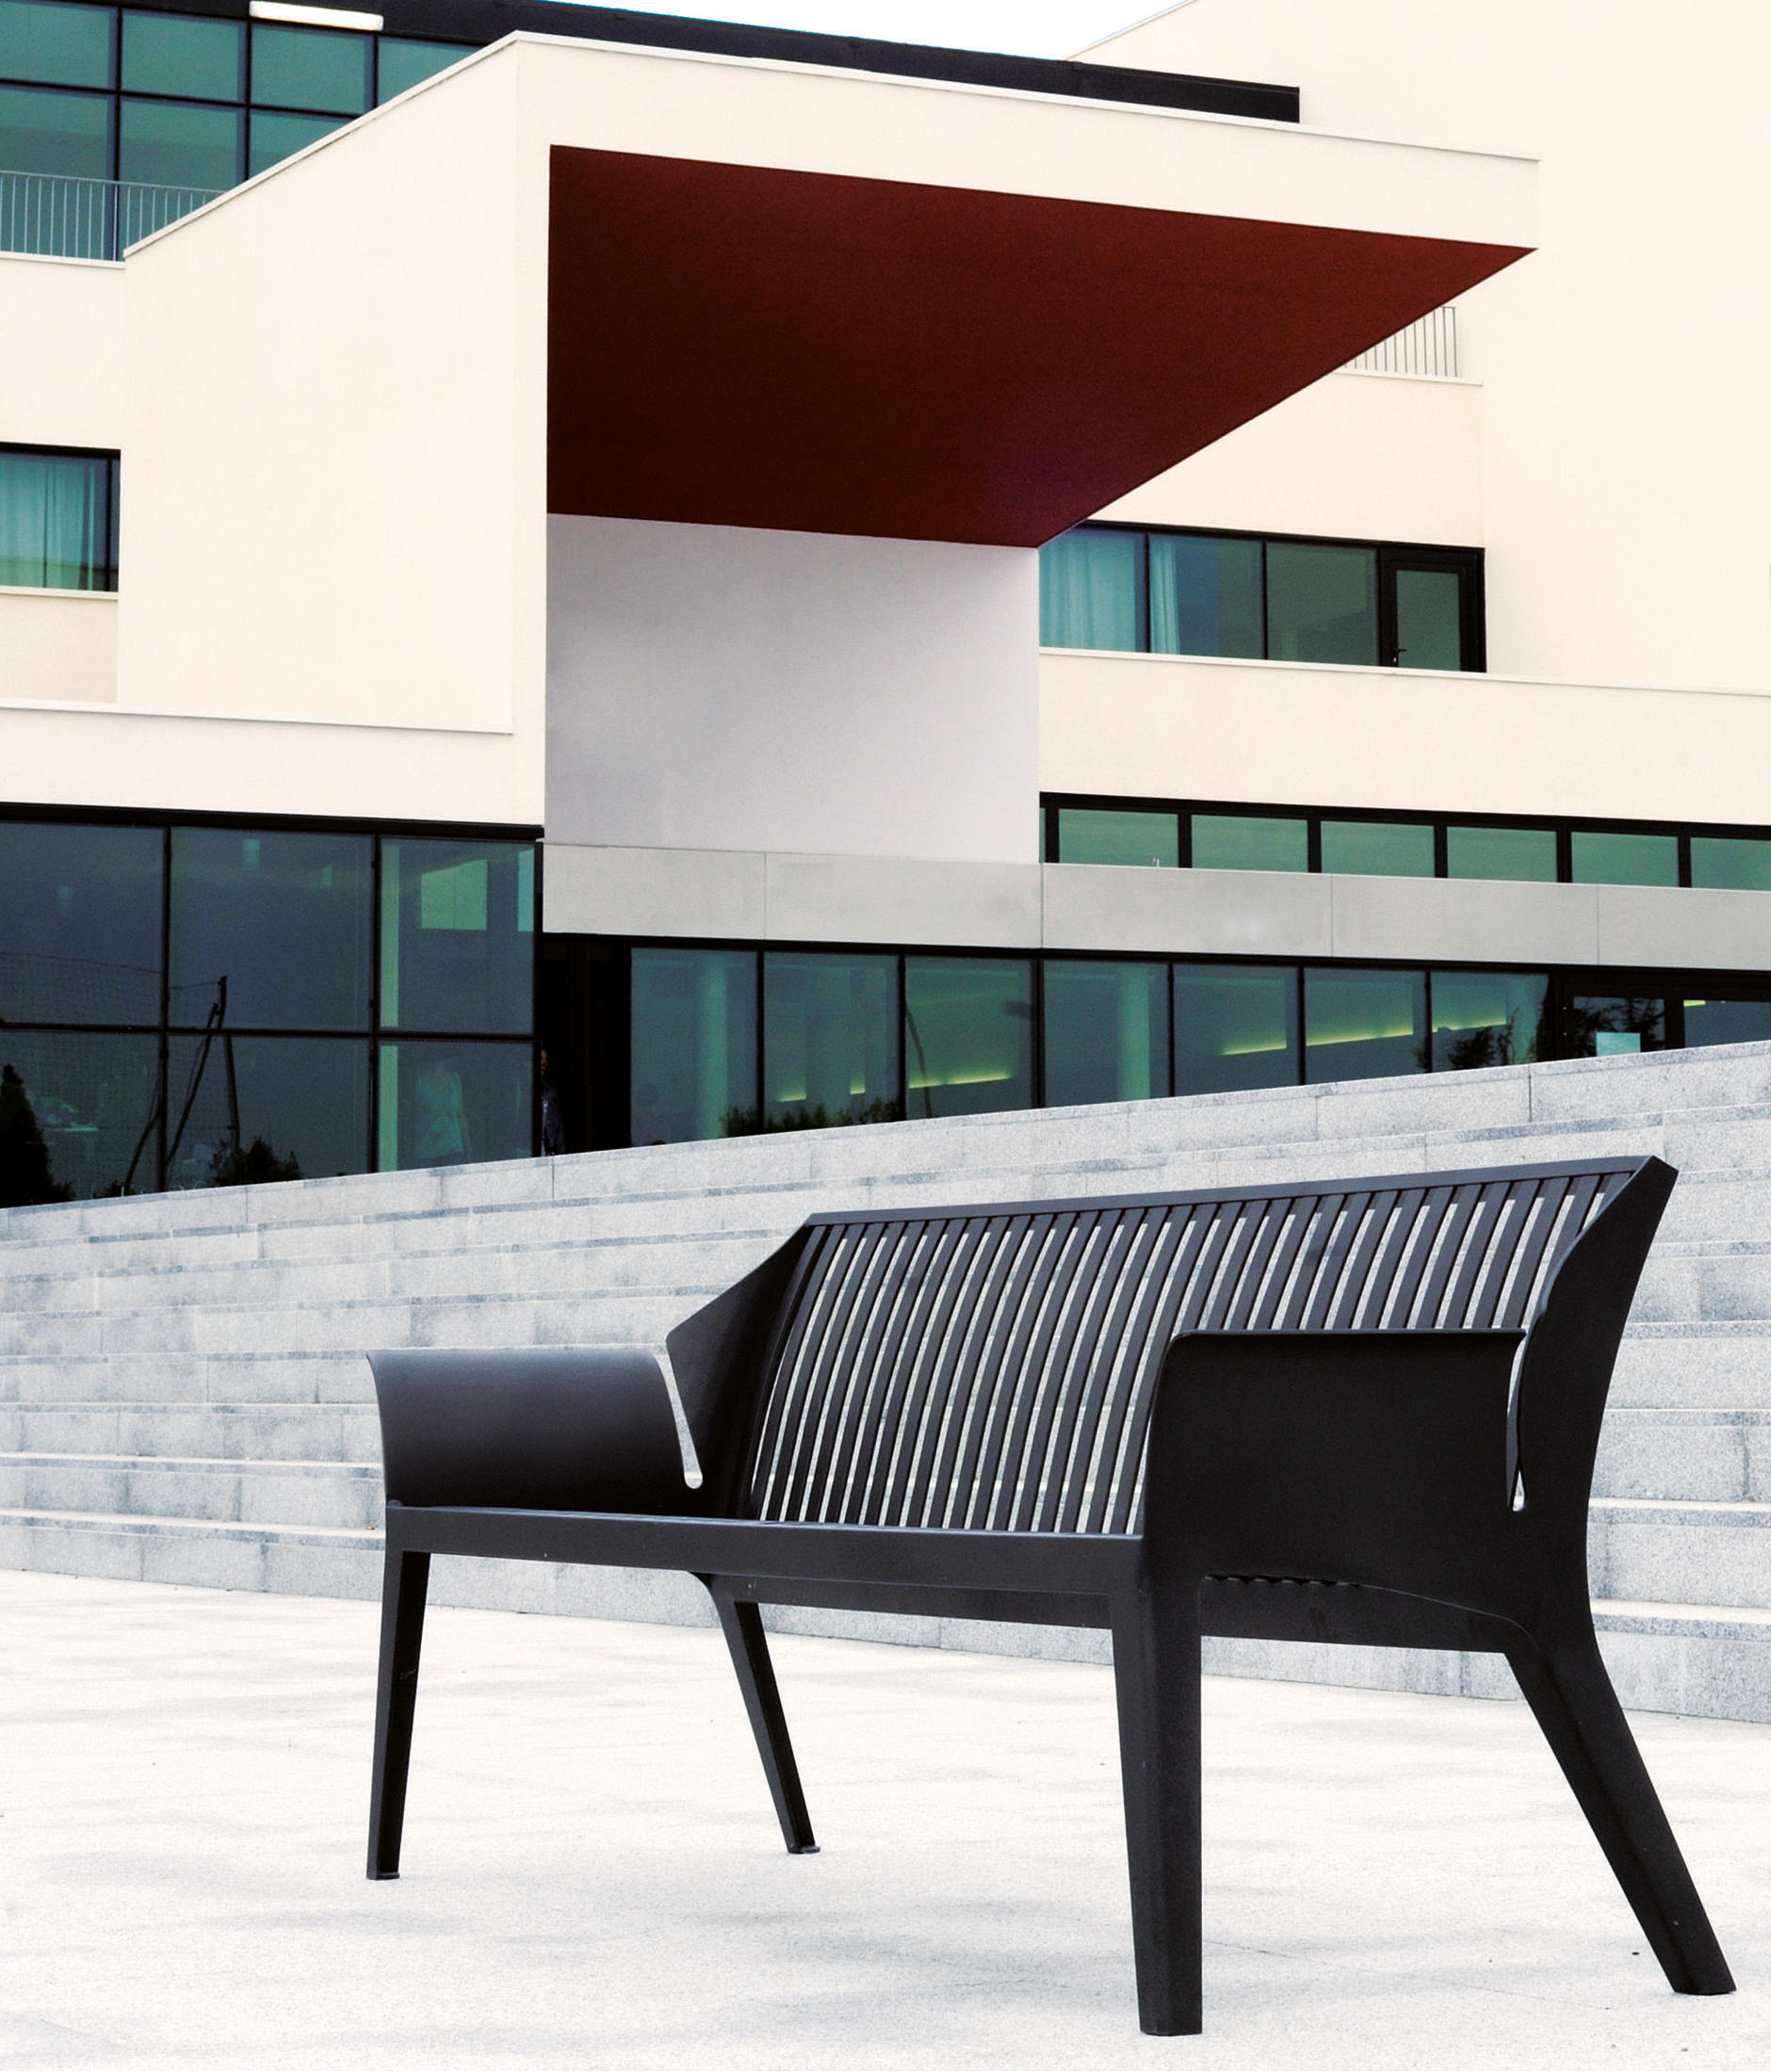 Outdoor Furniture Vancouver Part - 38: Vancouver Bench By AREA | Exterior Benches ...